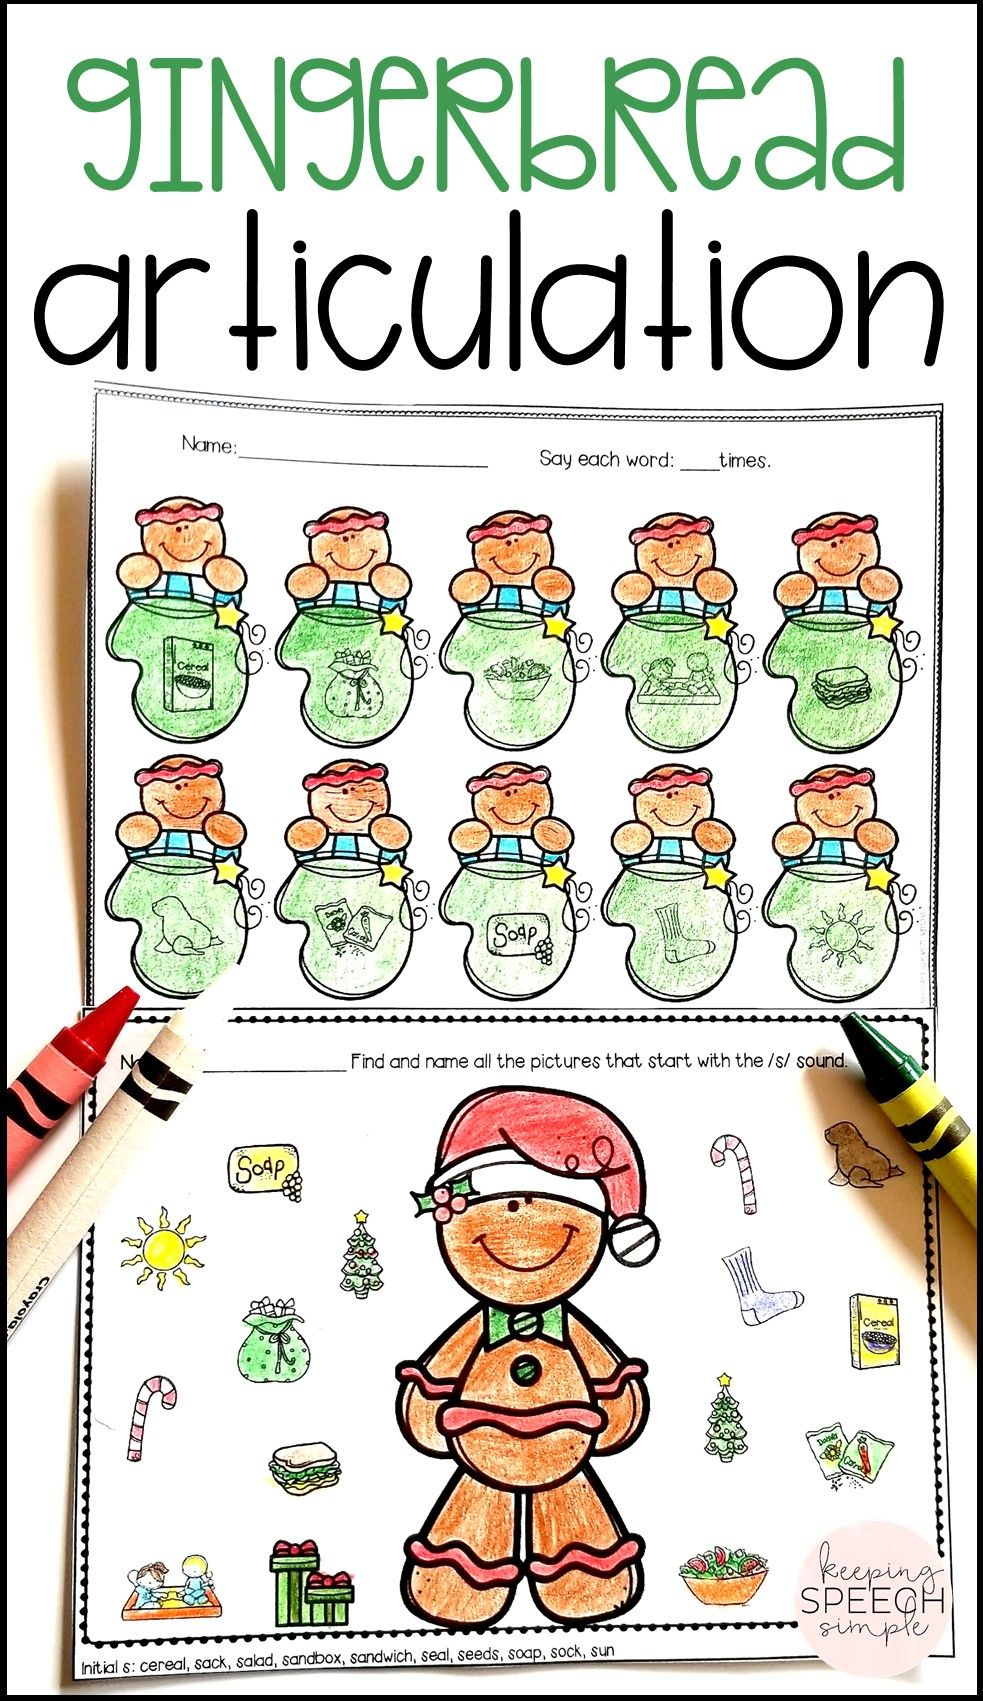 Check Out These Adorable No Prep Worksheets That Target A Variety Of Speech Targets All T Speech Therapy Activities Christmas Speech Therapy Speech Activities [ 1701 x 983 Pixel ]